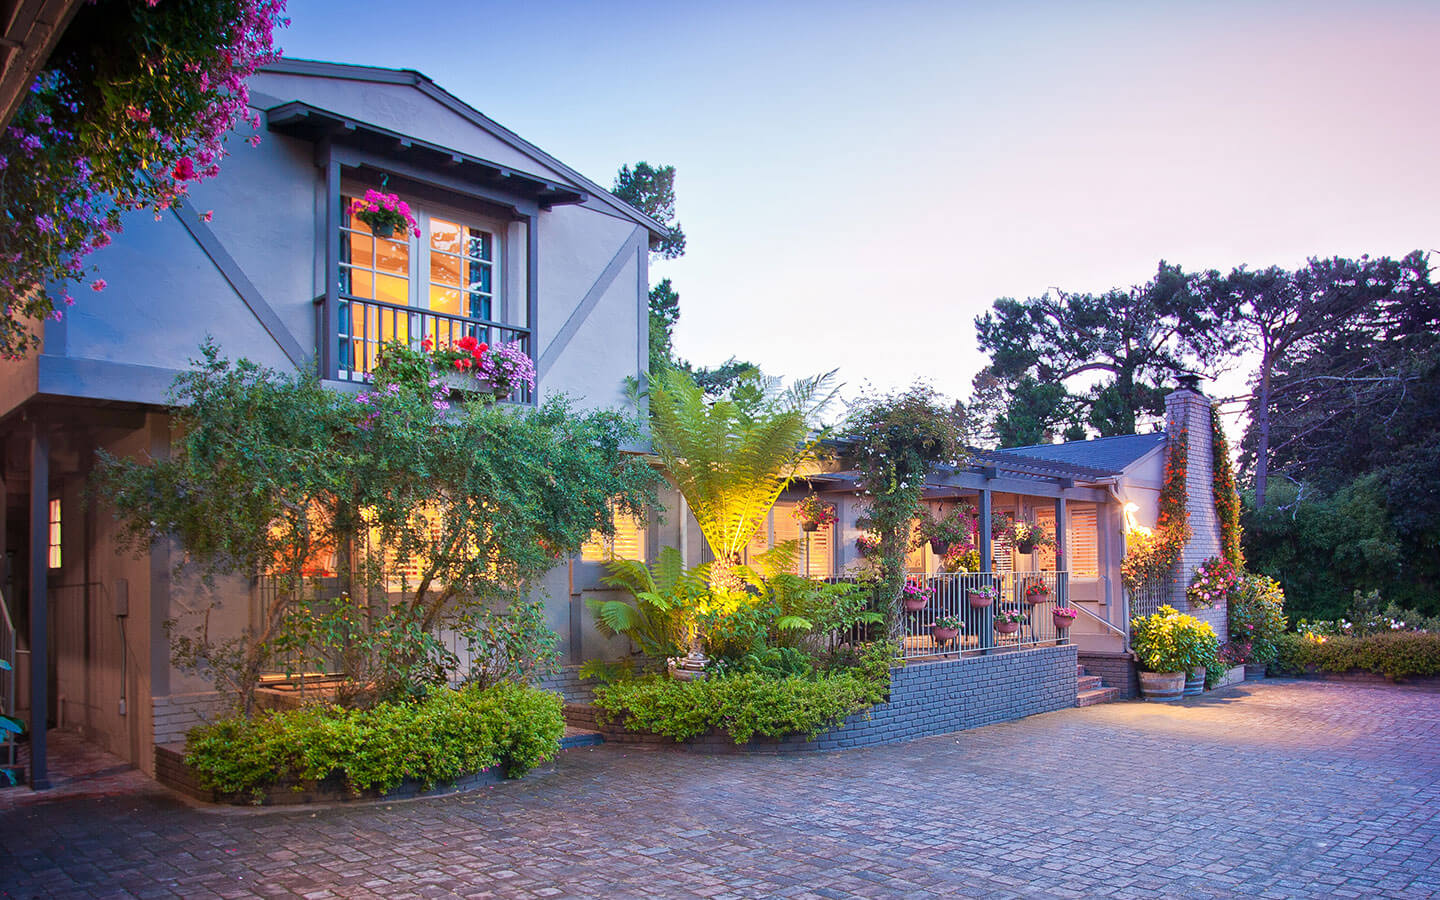 Our charming Carmel bed and breakfast at dusk